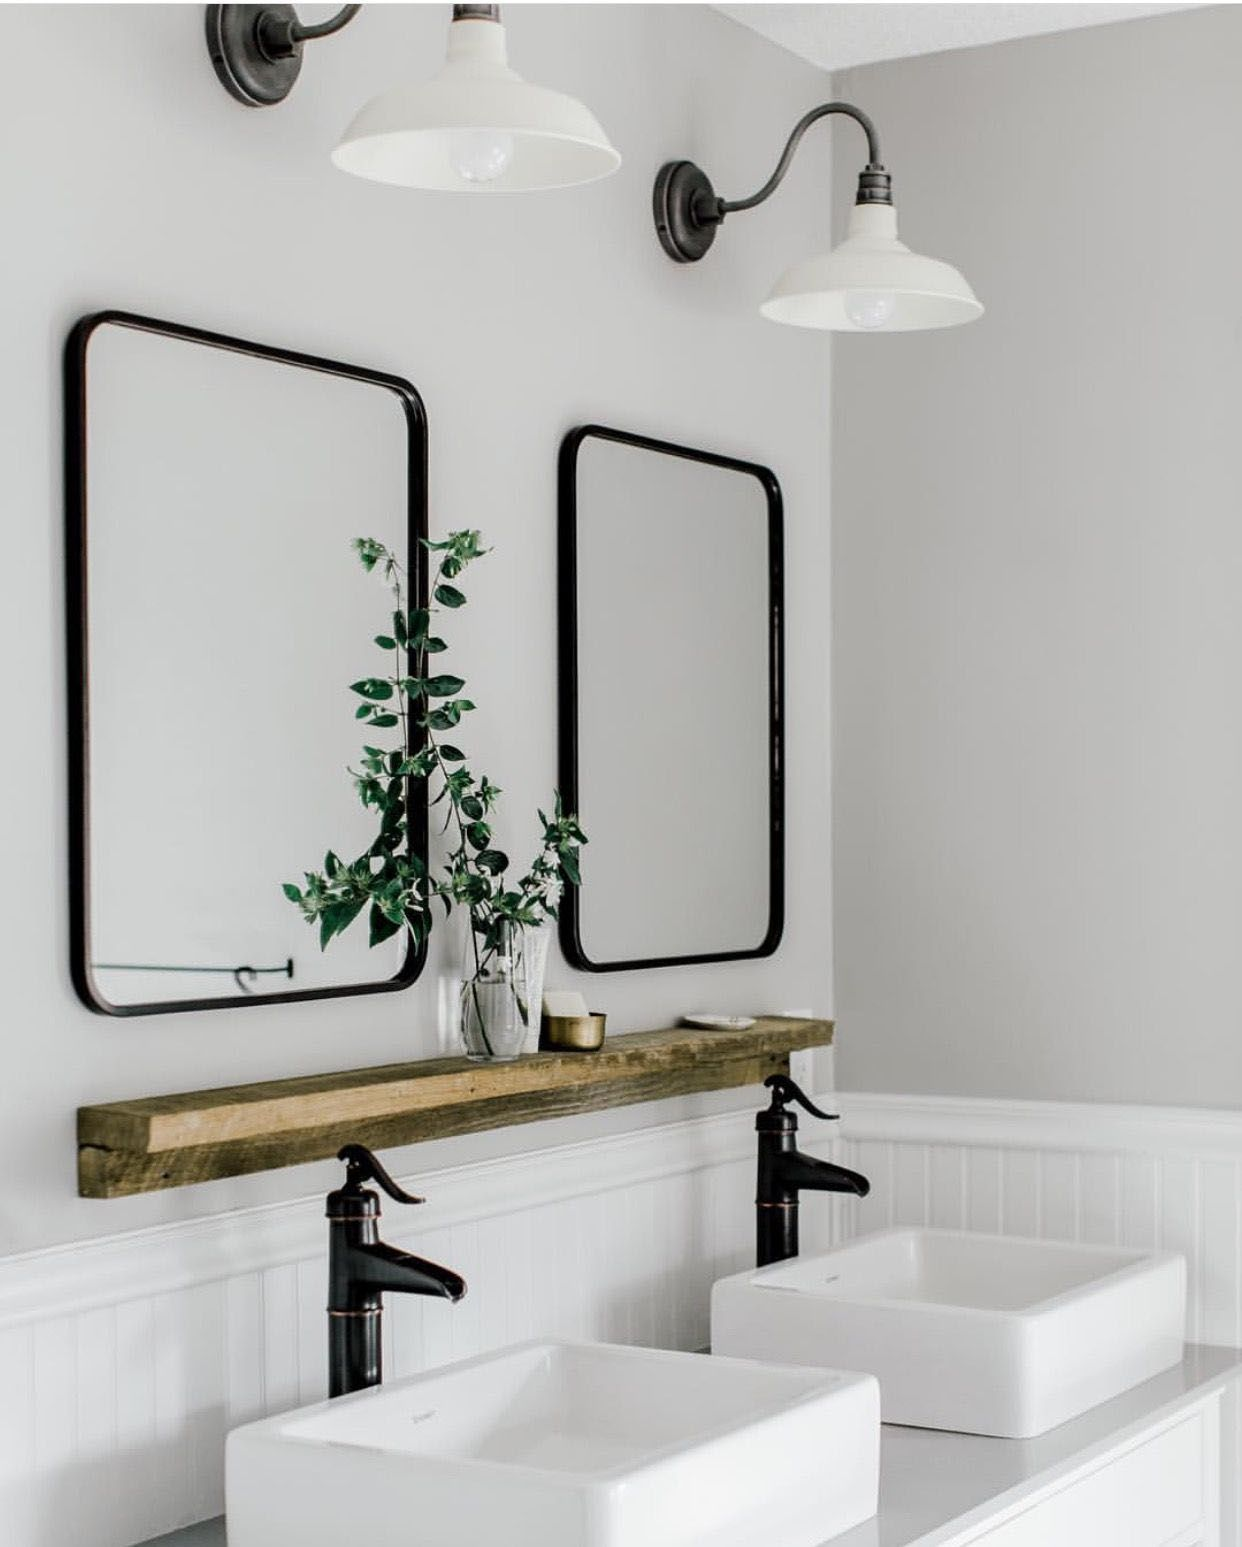 Bathroom Mirror Ideas To Reflect Your Style Modern Bathroom Mirrors Bathroom Mirror Design Modern Farmhouse Bathroom